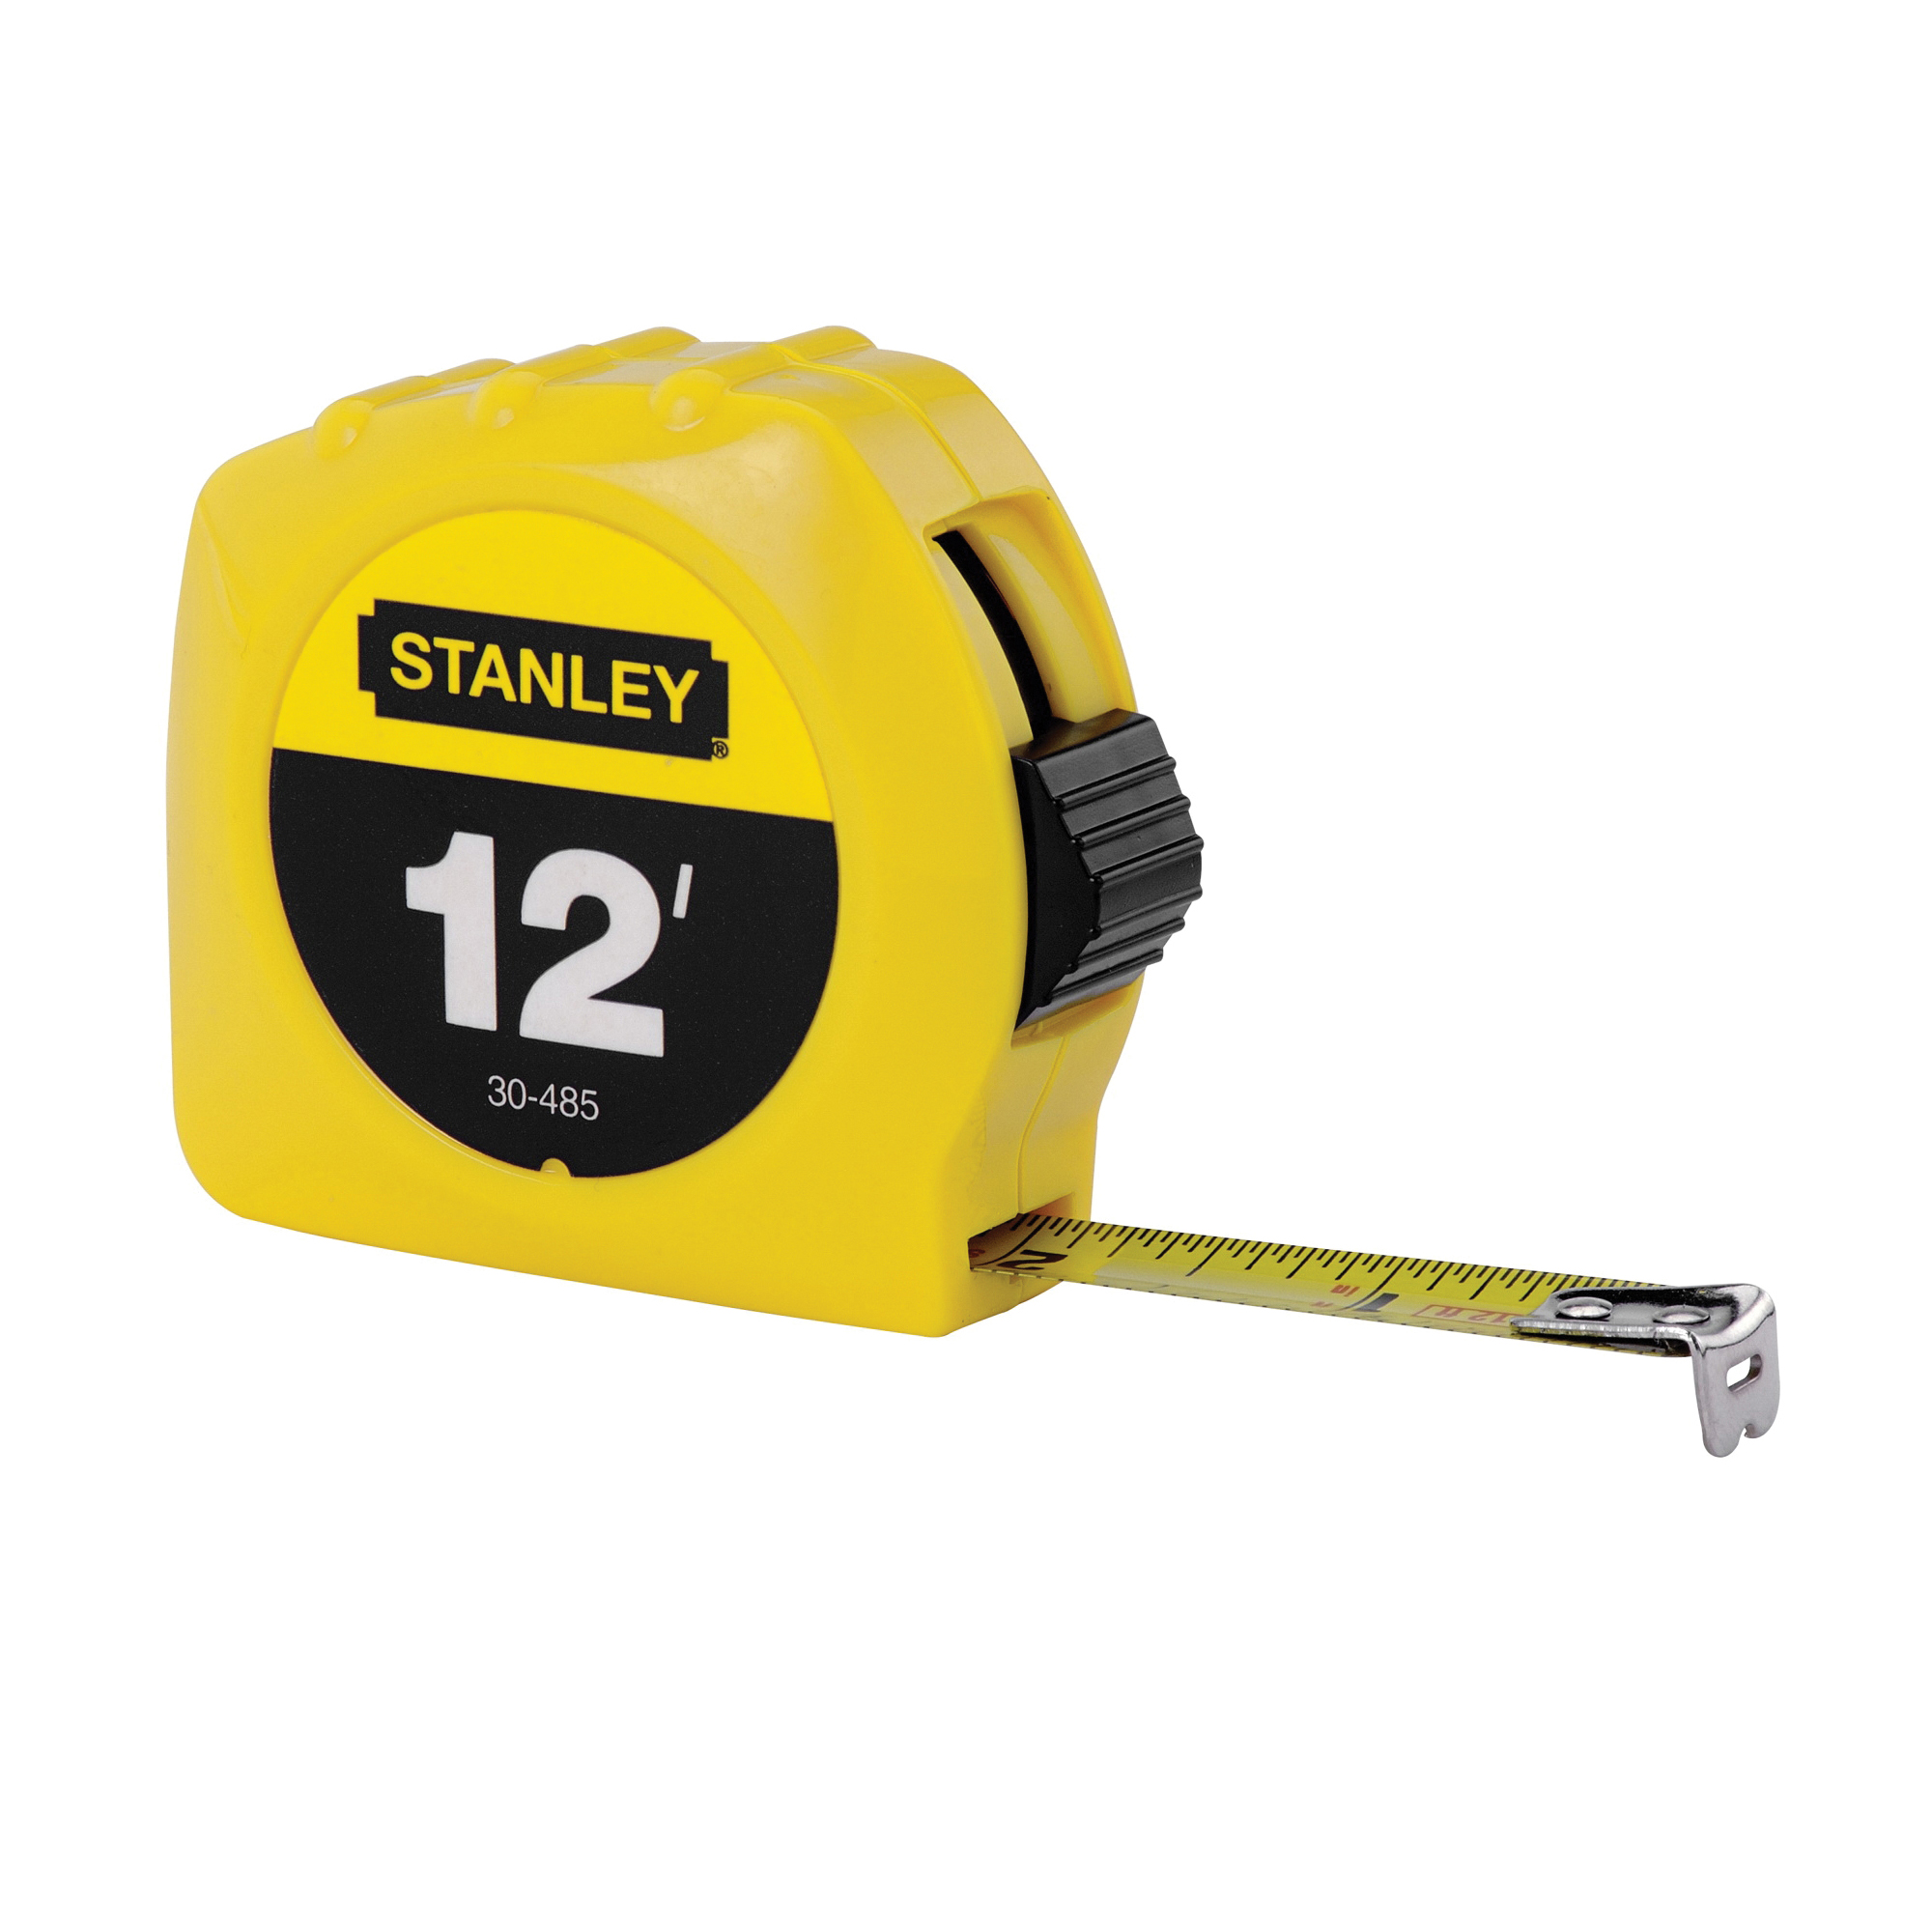 Stanley® 30-485 Tape Rule, 12 ft L x 1/2 in W Blade, Polymer Coated Steel, Imperial